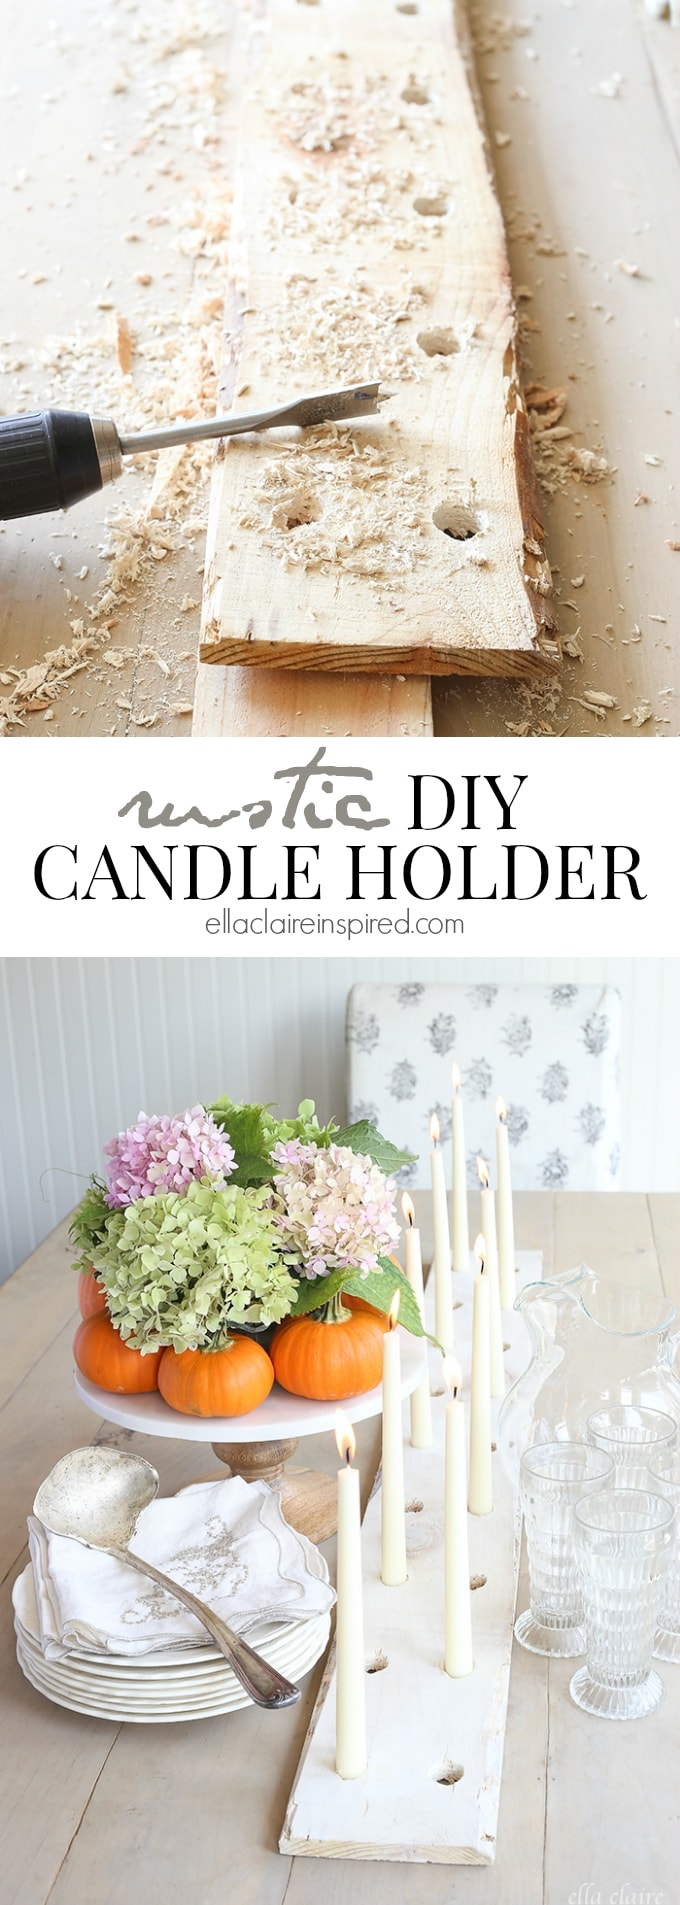 Rustic DIY Candle Holder